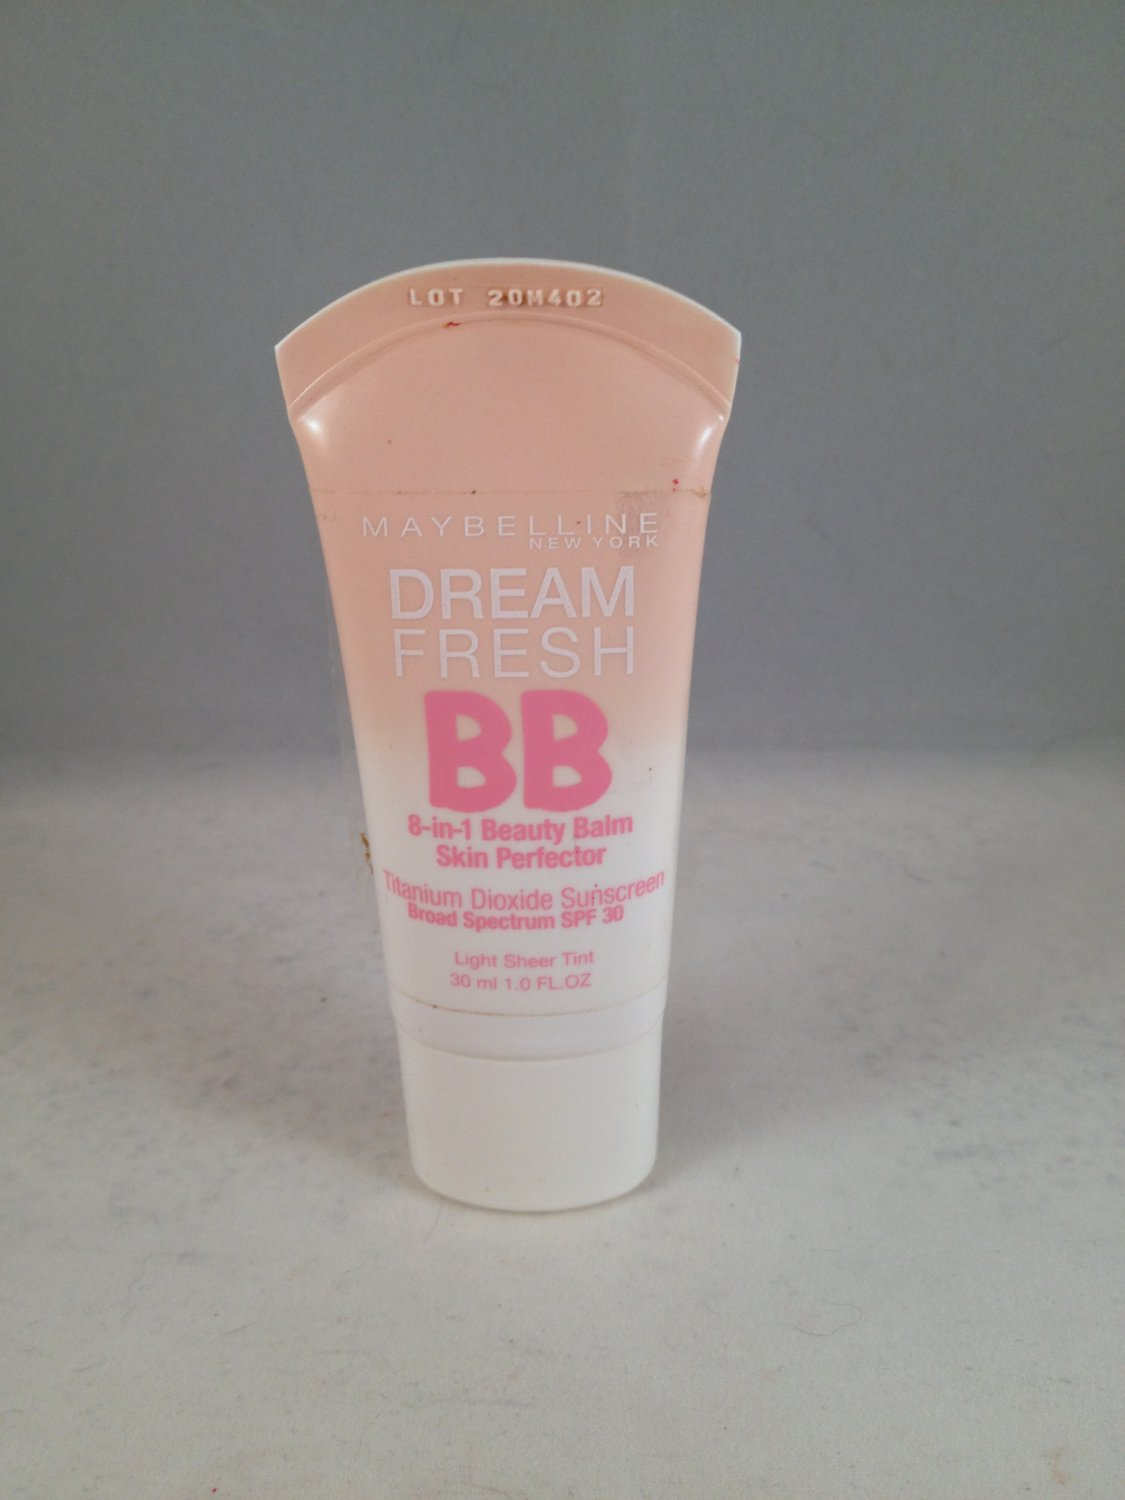 Maybelline Dream Fresh BB 8-In-1 Beauty Balm Skin Perfector Light Sheer Tint cream tinted